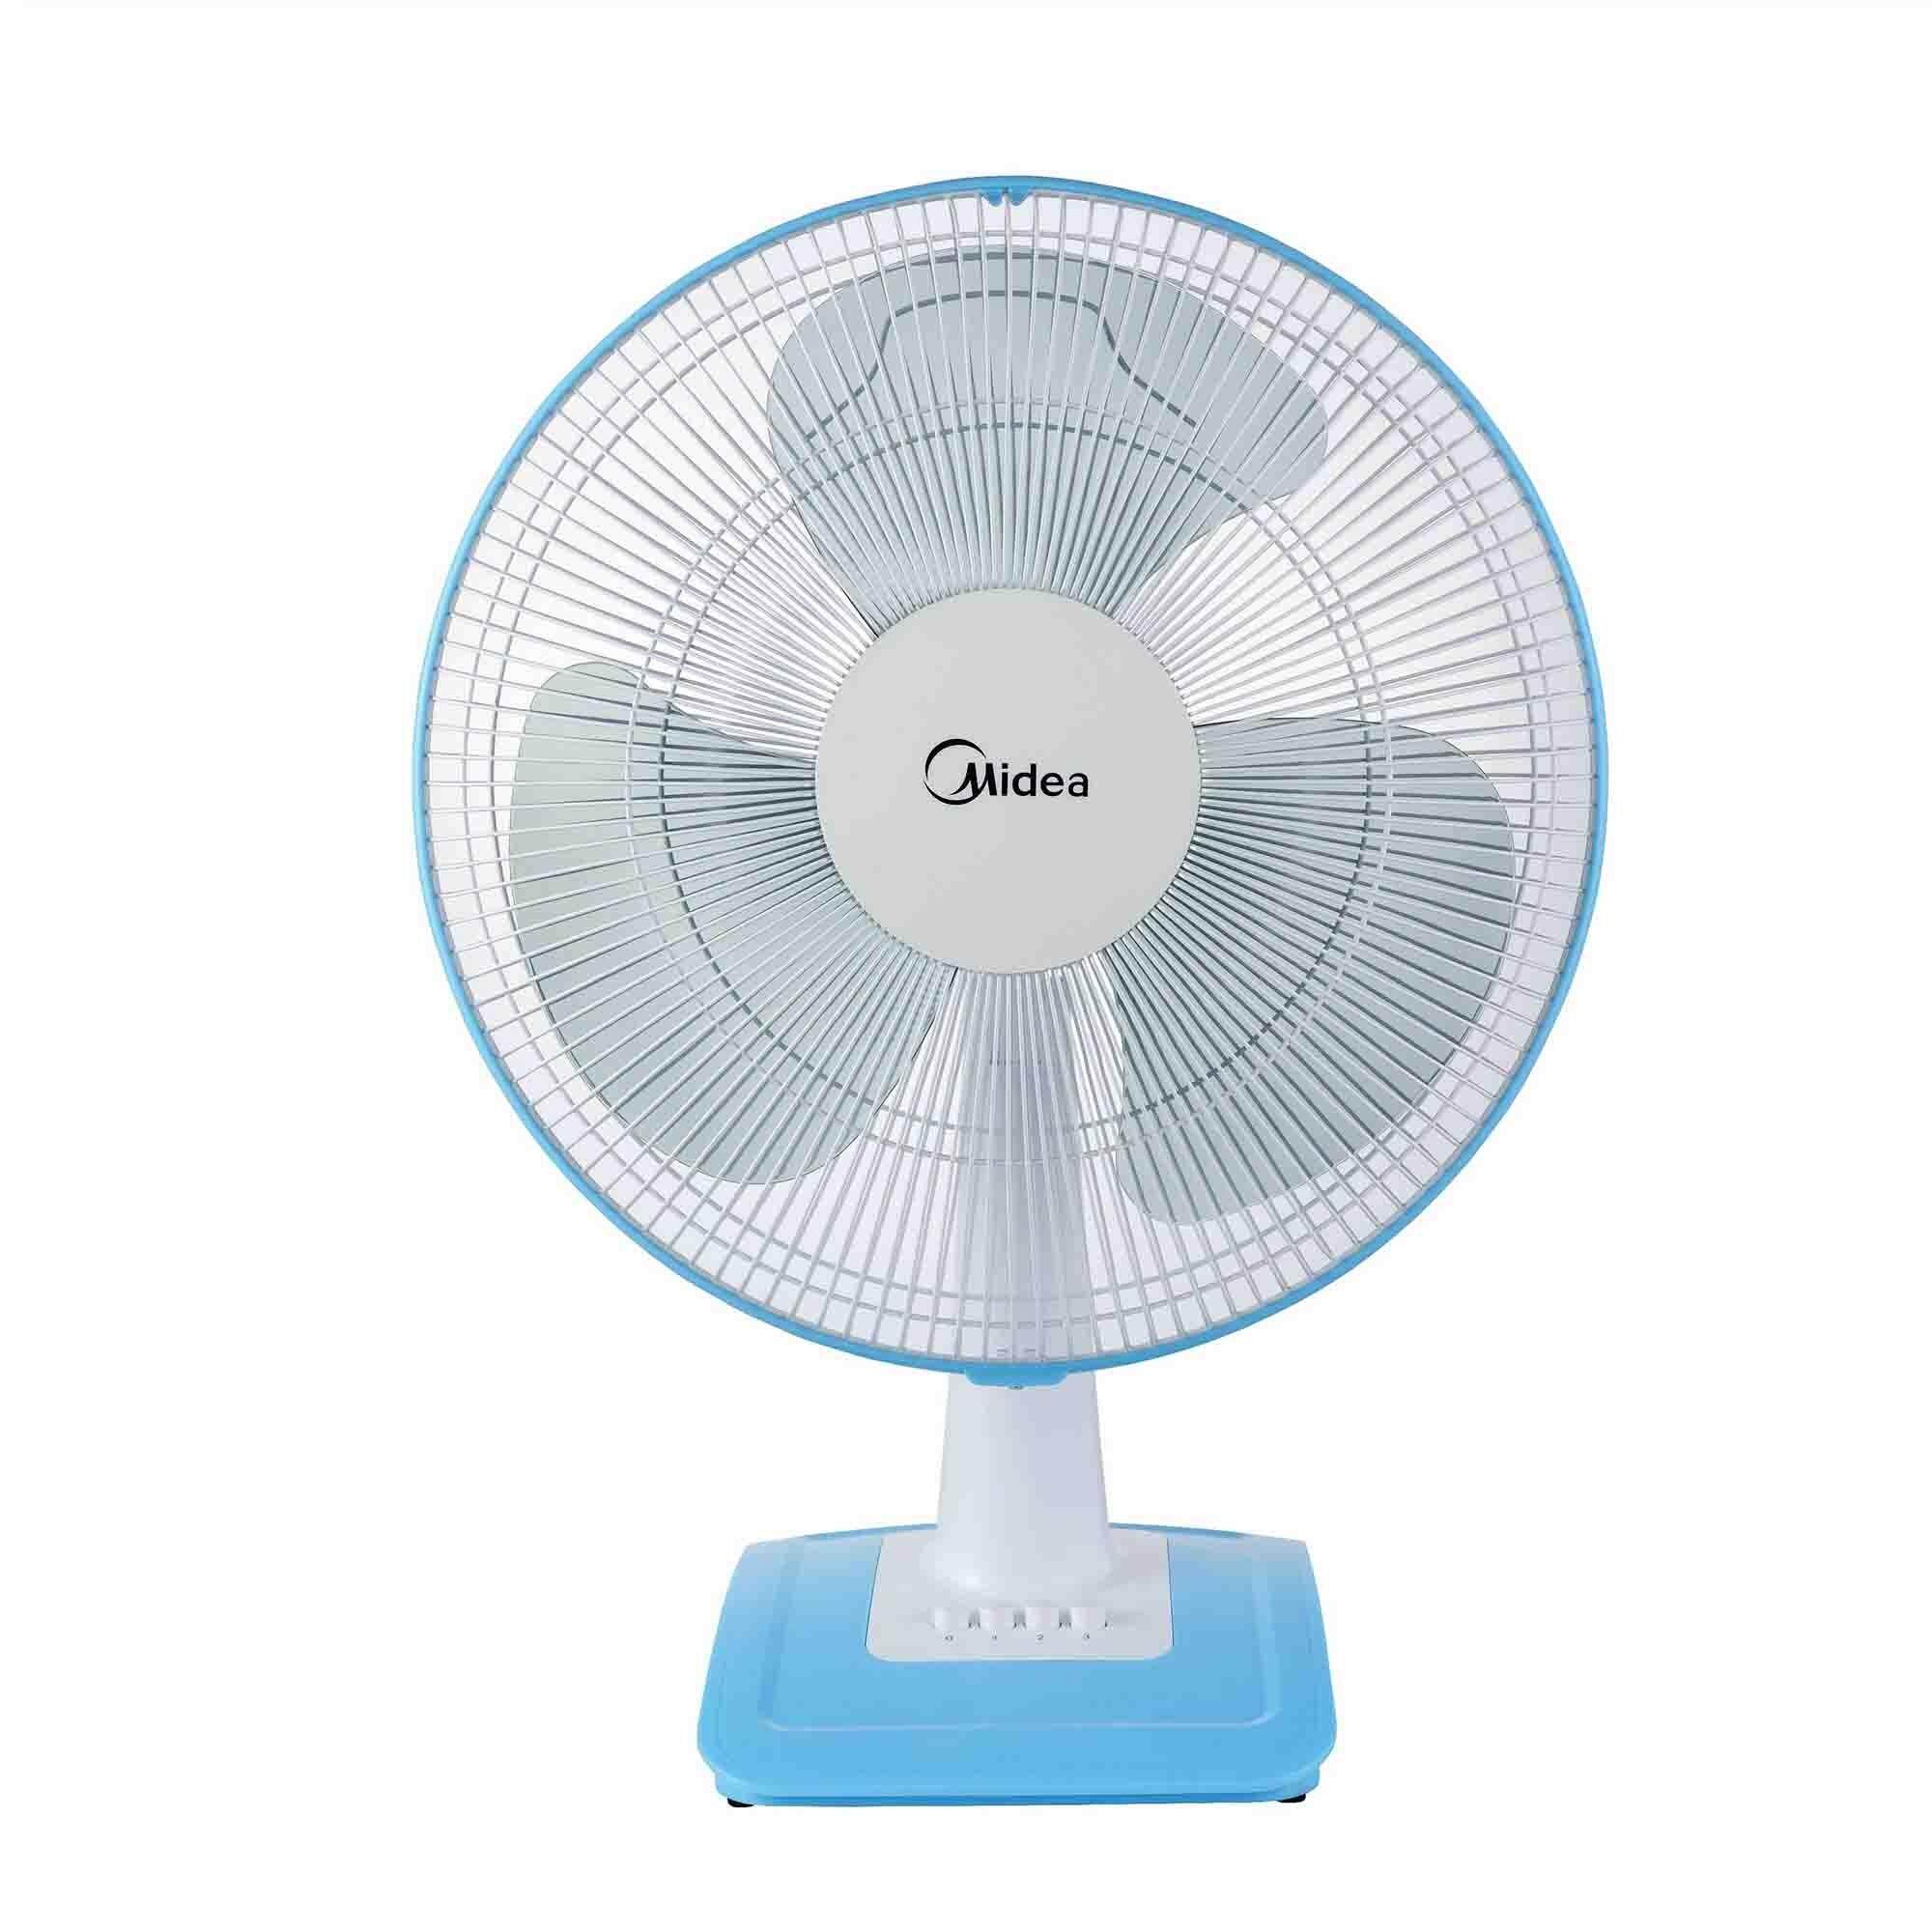 Latest Branded Fans With Best Online Price In Malaysia Mini Portable Fan Powerbank Kipas Angin Midea Mf 16ft17nb Table 16 Blue White